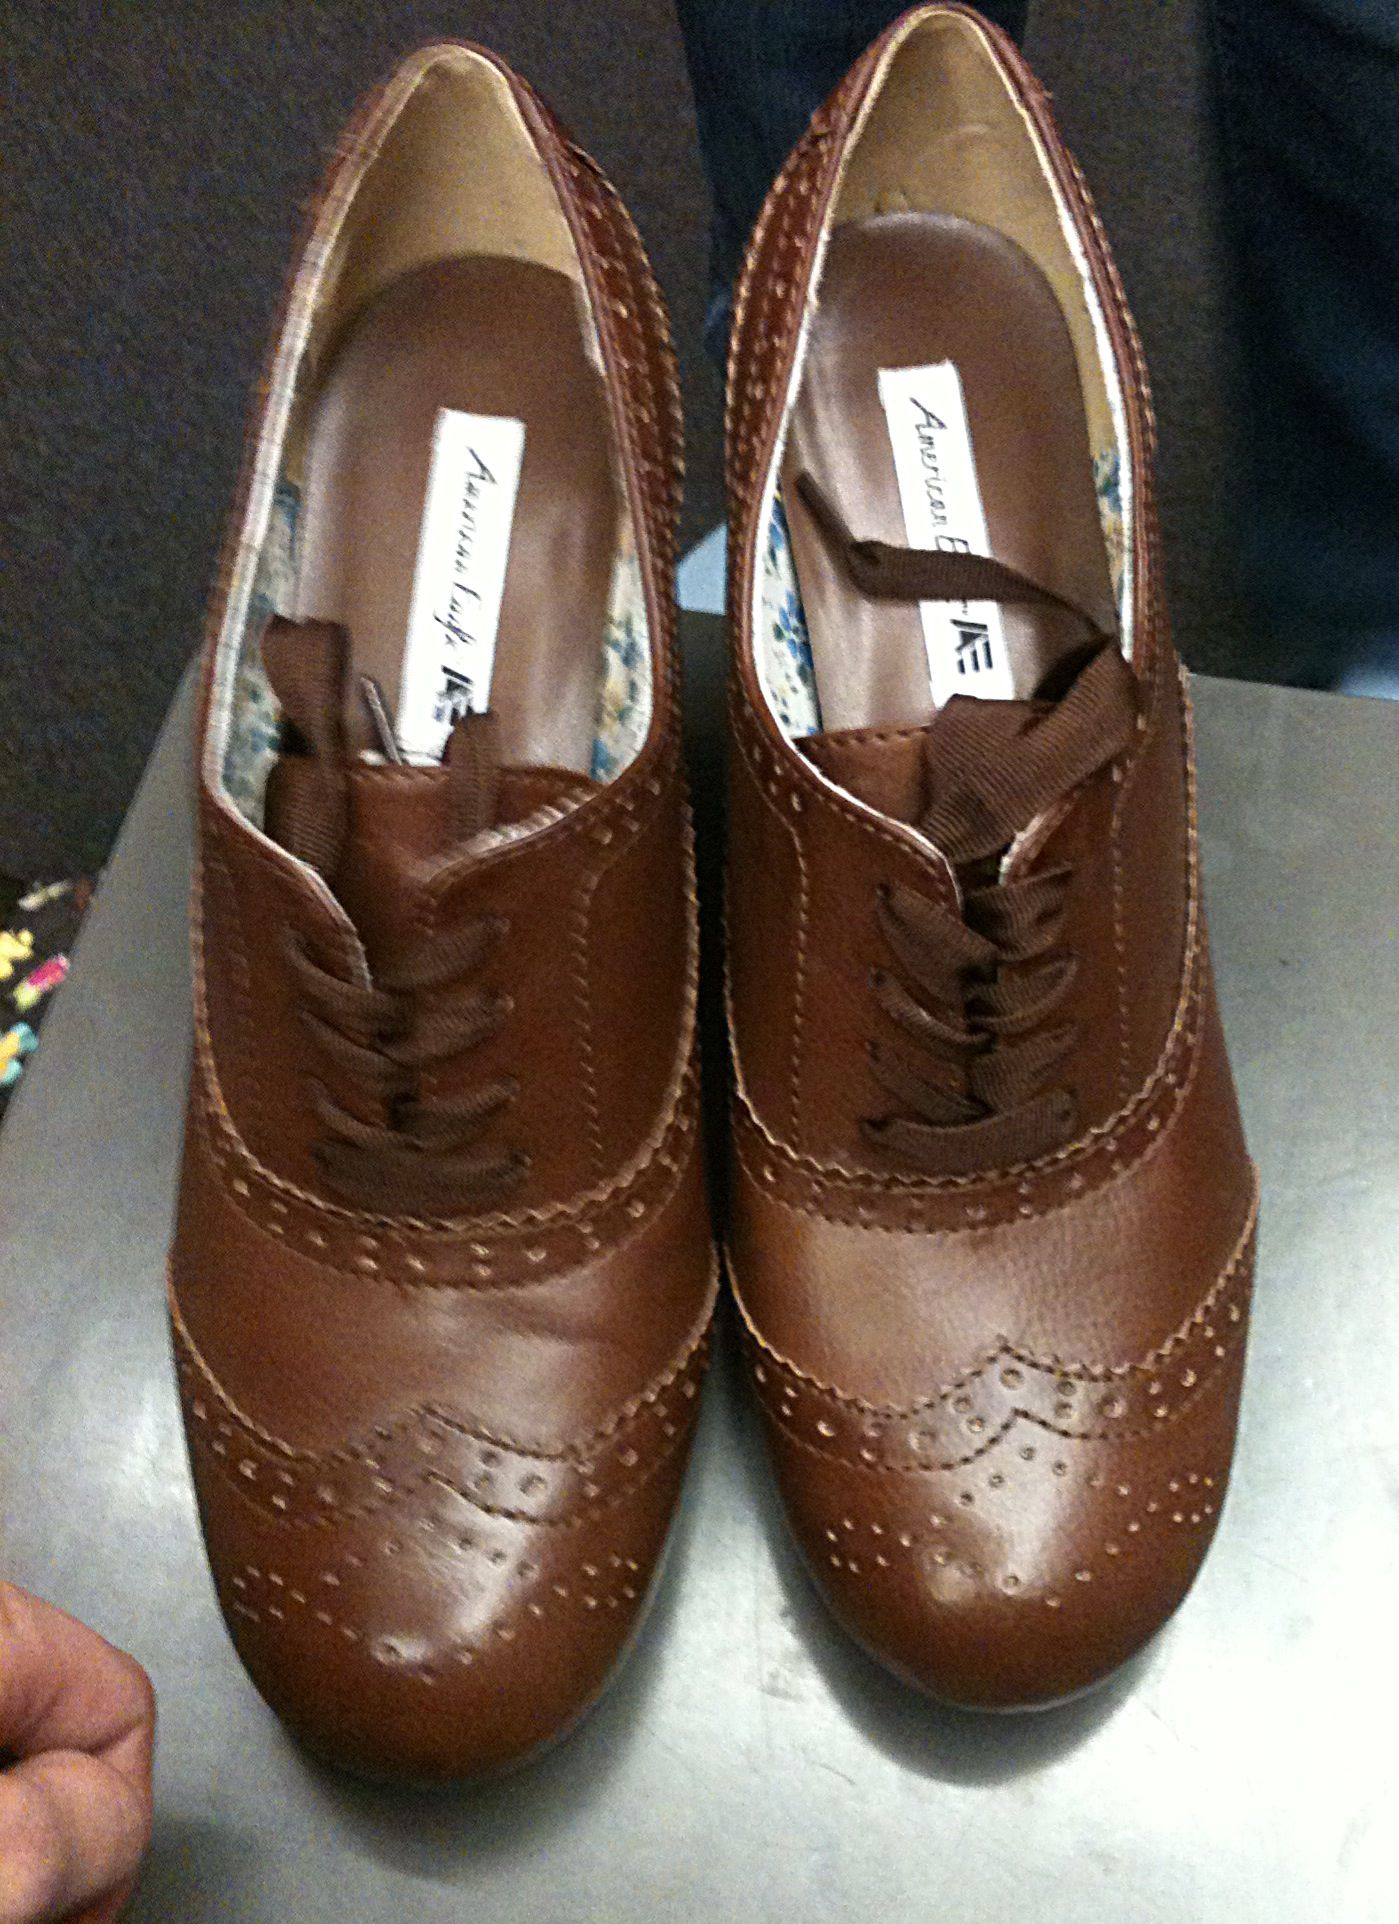 This Fan Found A Pair Of Oxford Wing-tipped Shoes. They